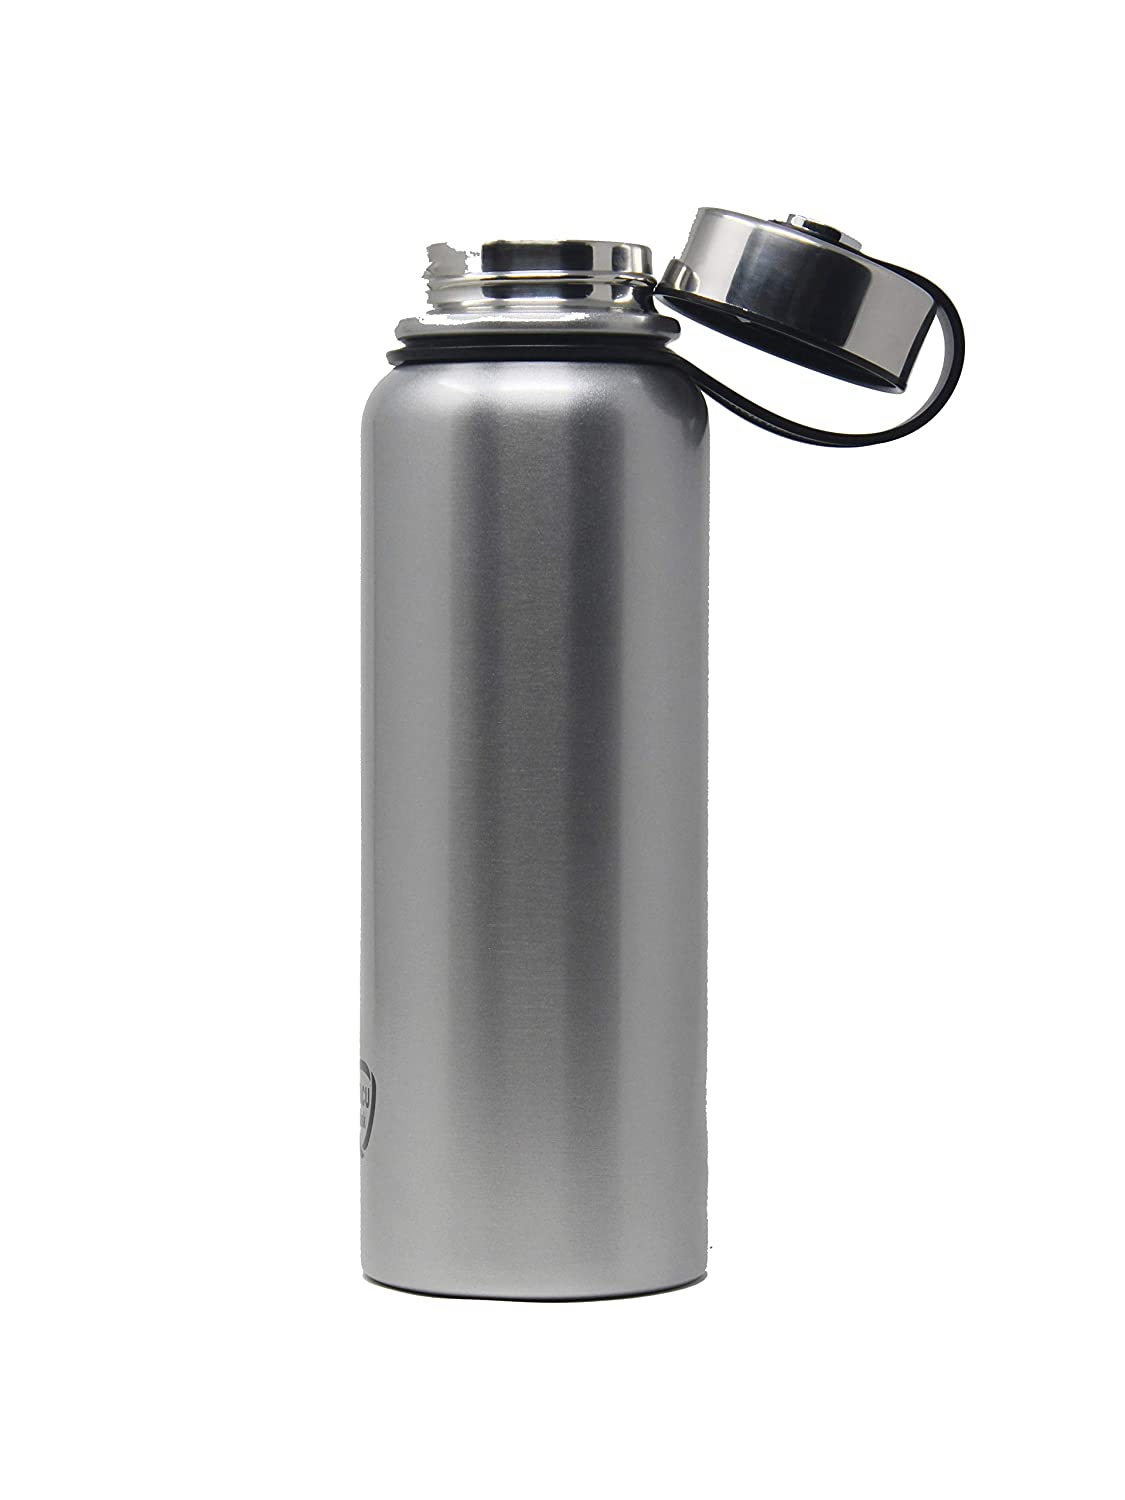 Wide Mouth|Leak-Proof Sweat Proof Sport Design Thermos,42Oz ELINA HOME Double Wall Vacuum Insulated Stainless Steel Gym Water Bottle Reusable Travel Coffee Mug